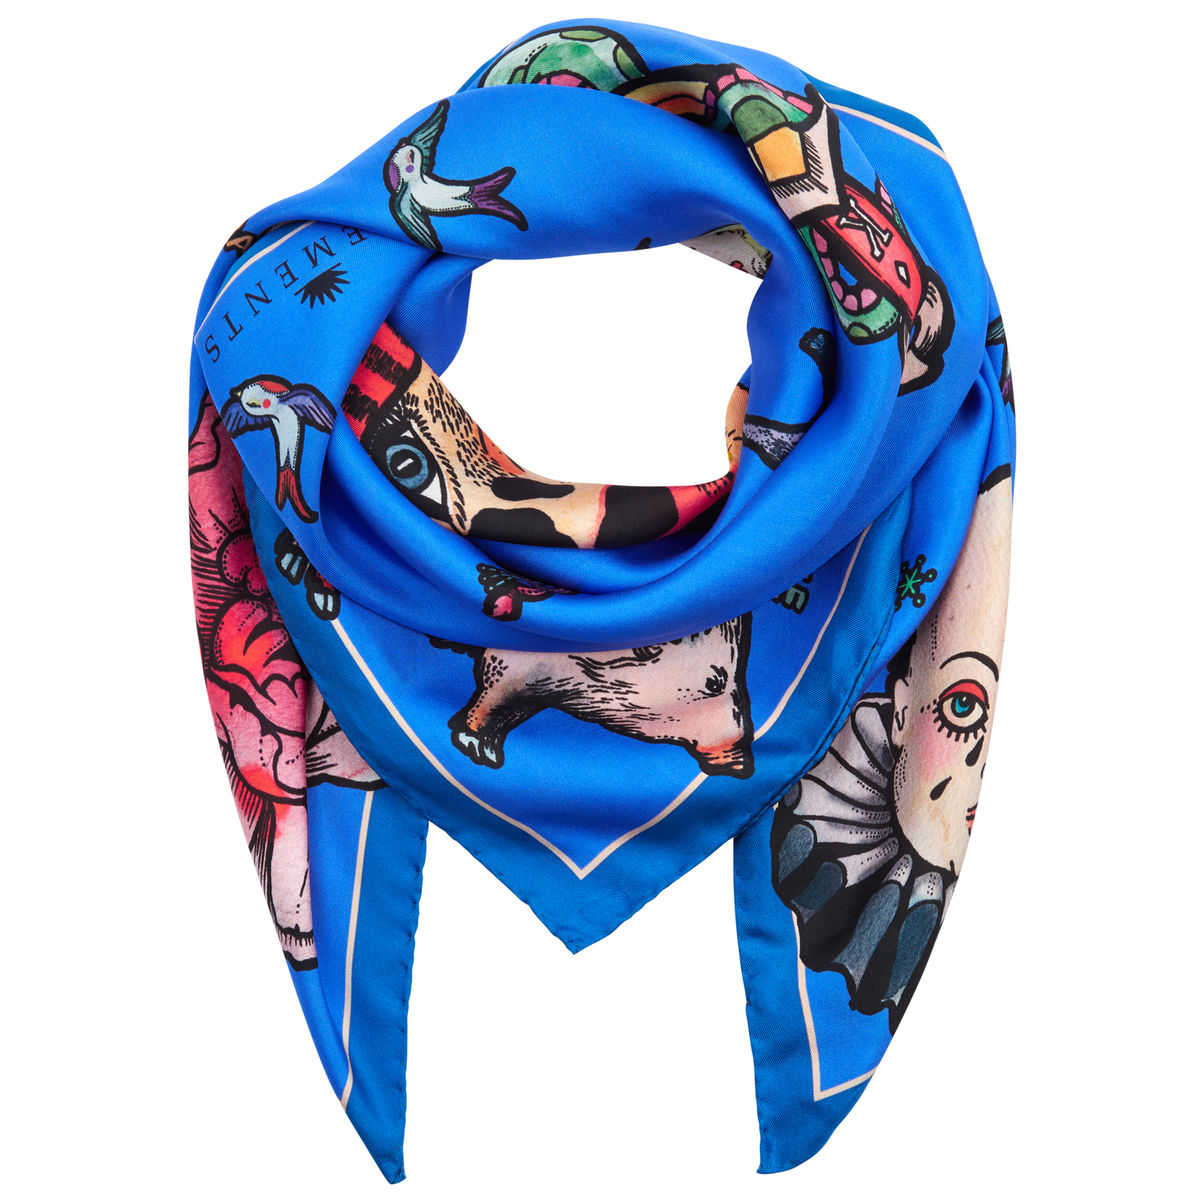 Medium scarf in Tattoo (blue) print - product images  of